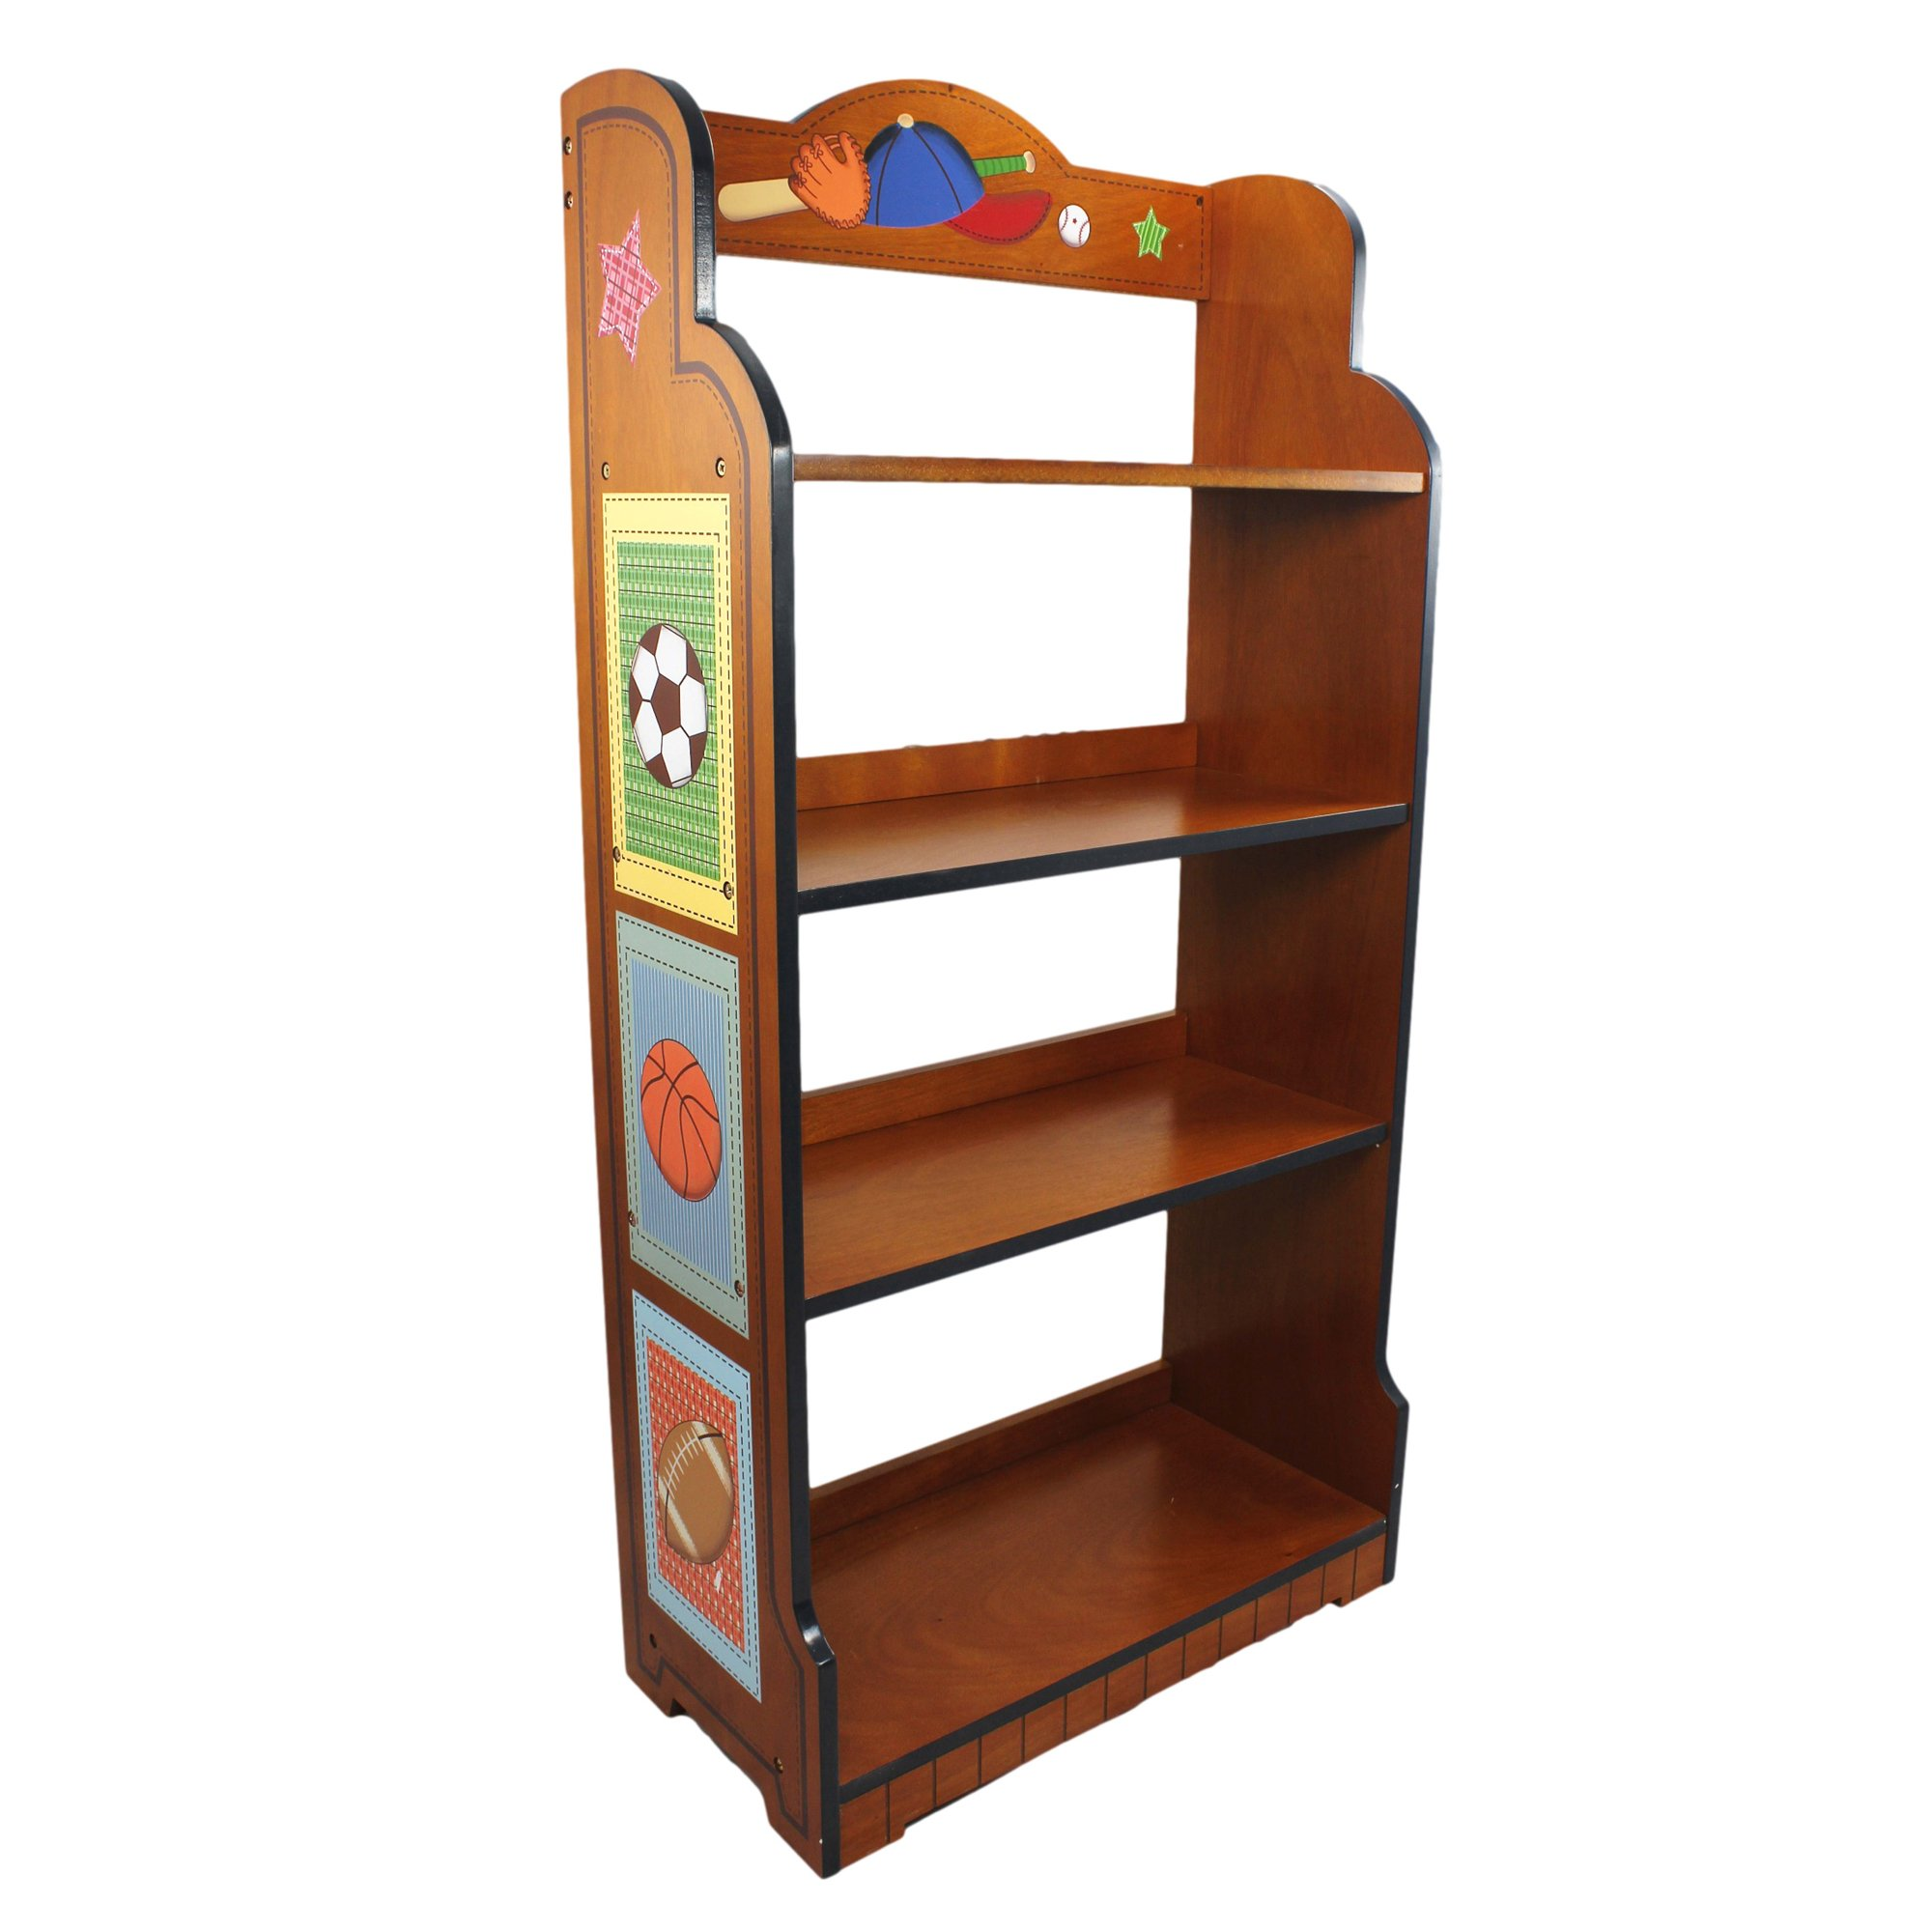 Fantasy Fields - Lil' Sports Fan Thematic Kids Wooden Bookcase with Storage | Imagination Inspiring Hand Crafted & Hand Painted Details   Non-Toxic, Lead Free Water-based Paint